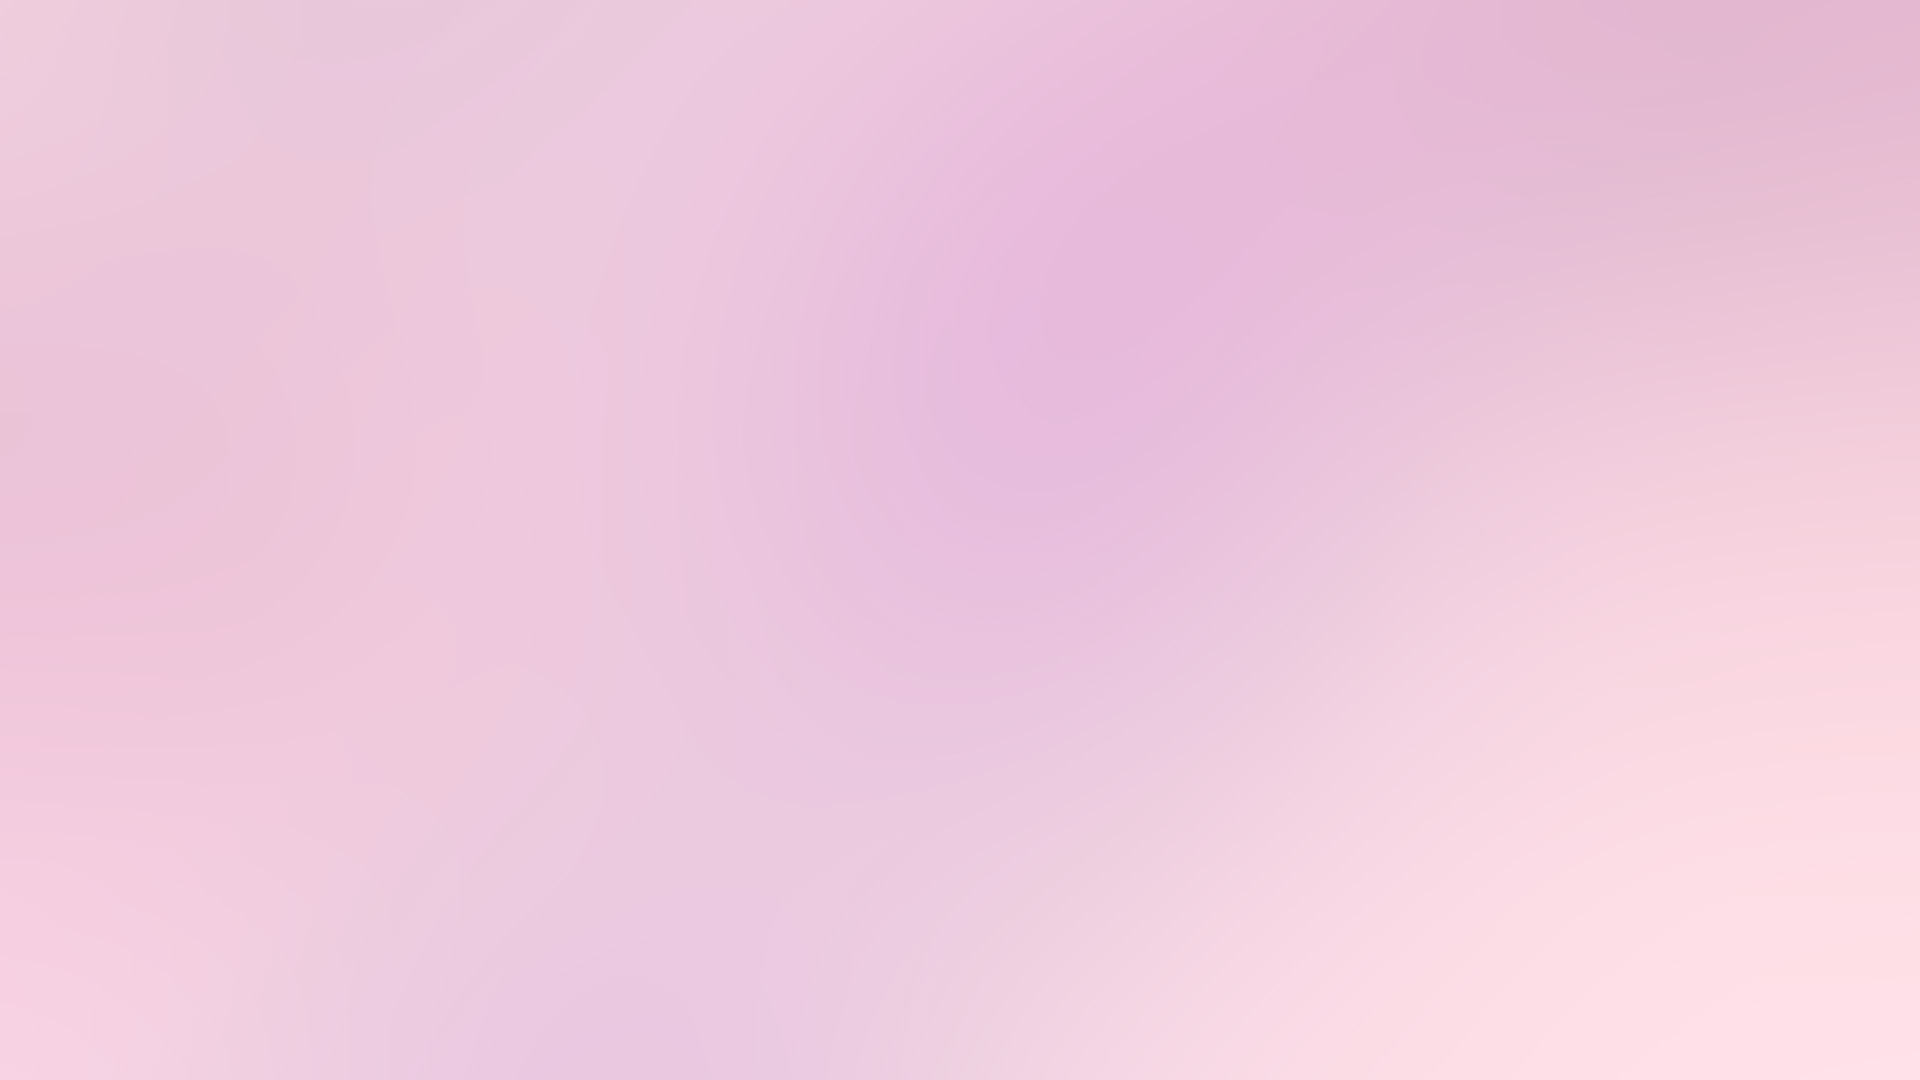 Si09 Soft Pink Baby Gradation Blur Wallpaper